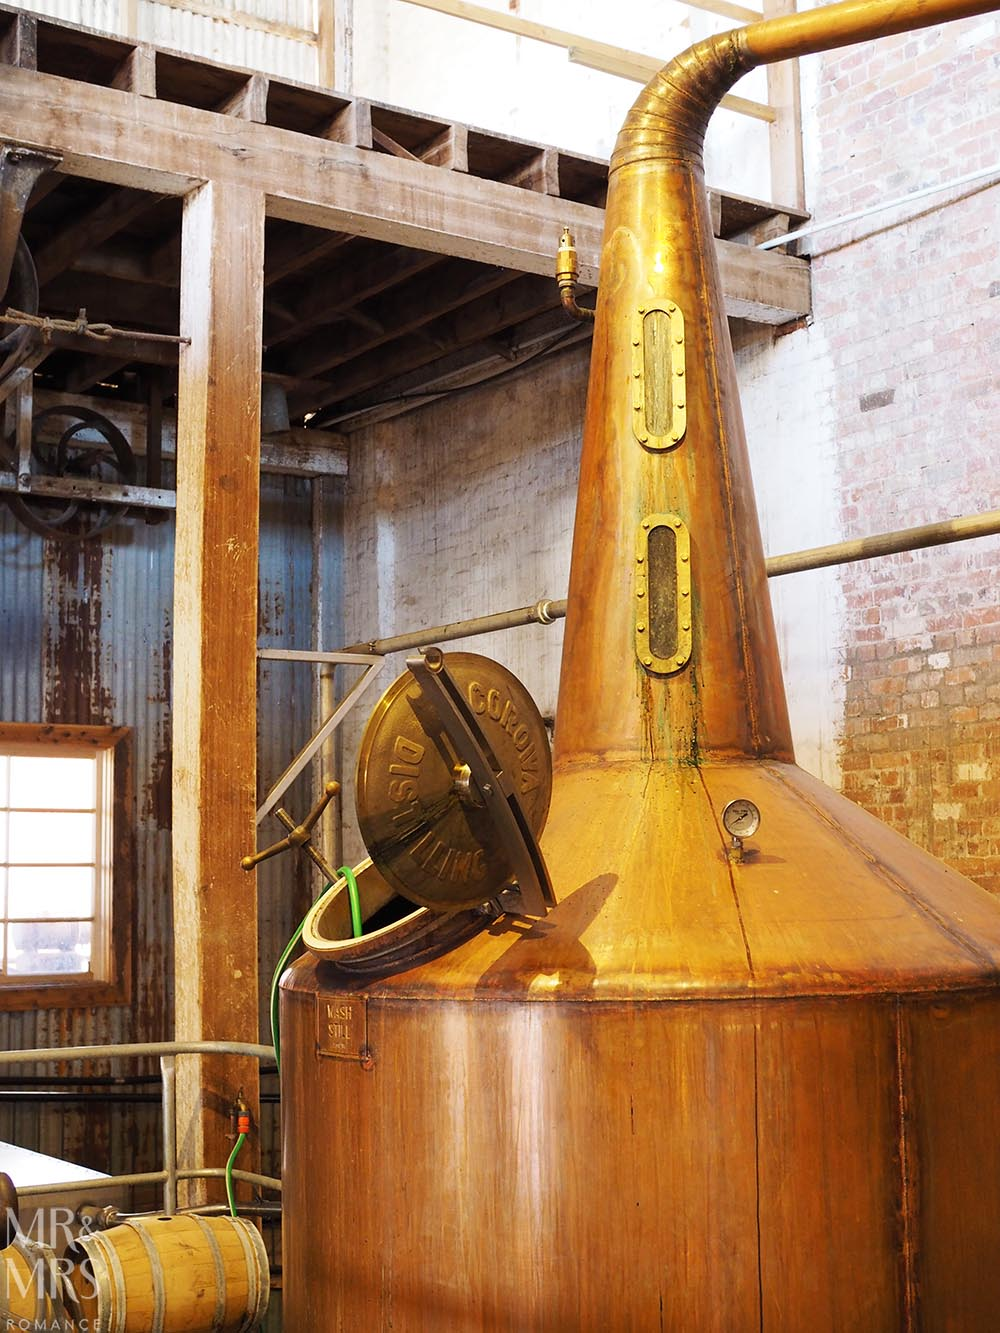 Australian whisky copper still - Corowa Distillery NSW - MMR